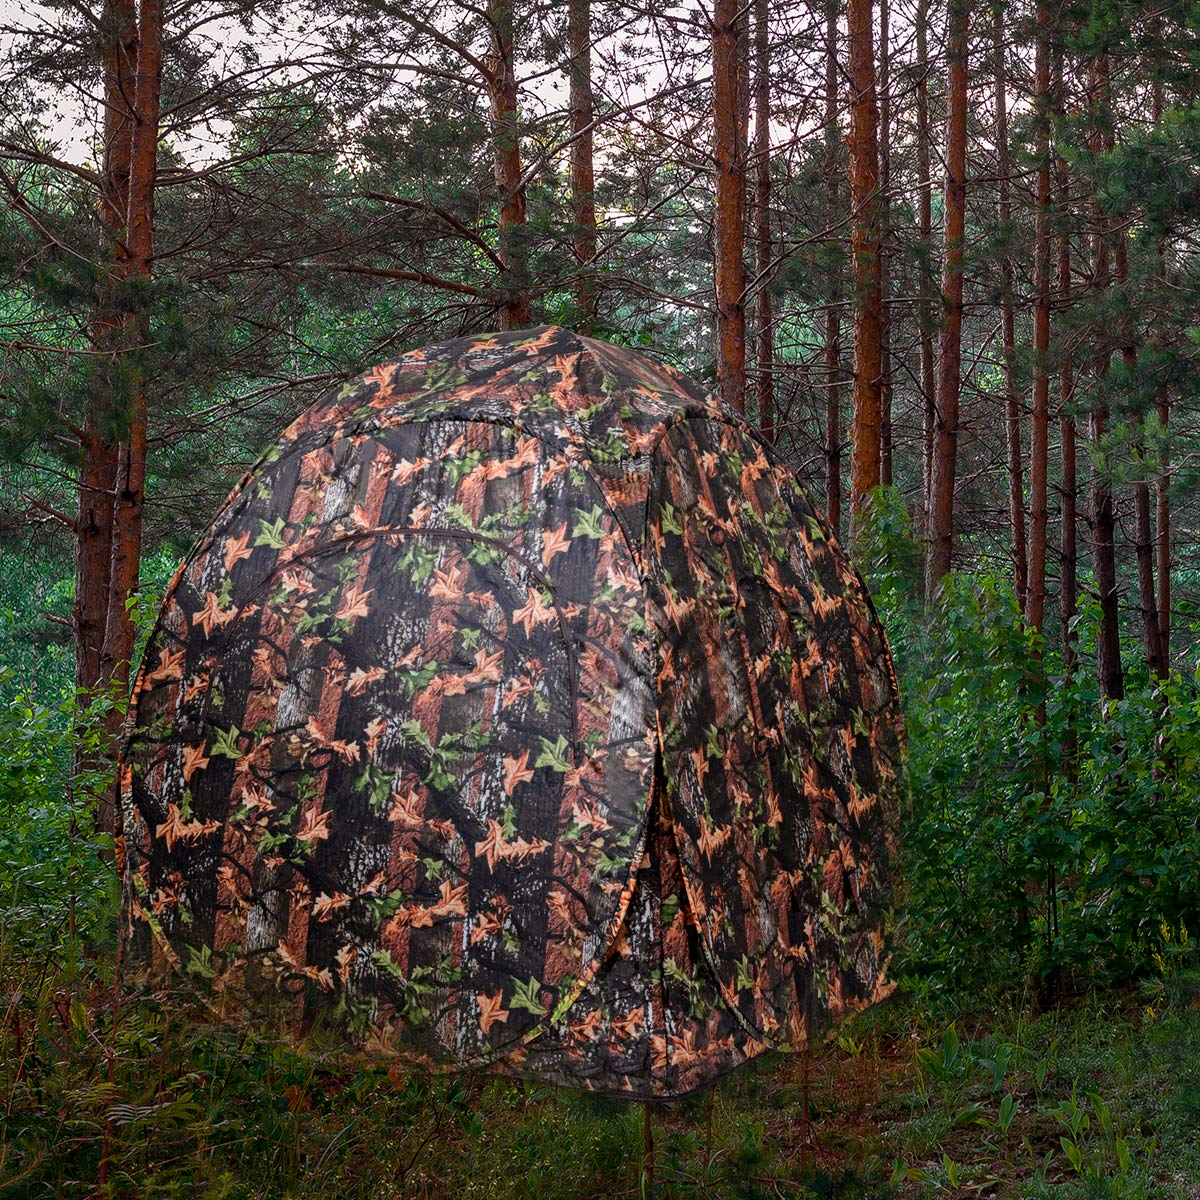 Tangkula Hunting Tent Portable Hunting Blind Pop Up Ground Blind 2-3 People Camo Waterproof with Backpack Hunting Enclosure by Tangkula (Image #3)